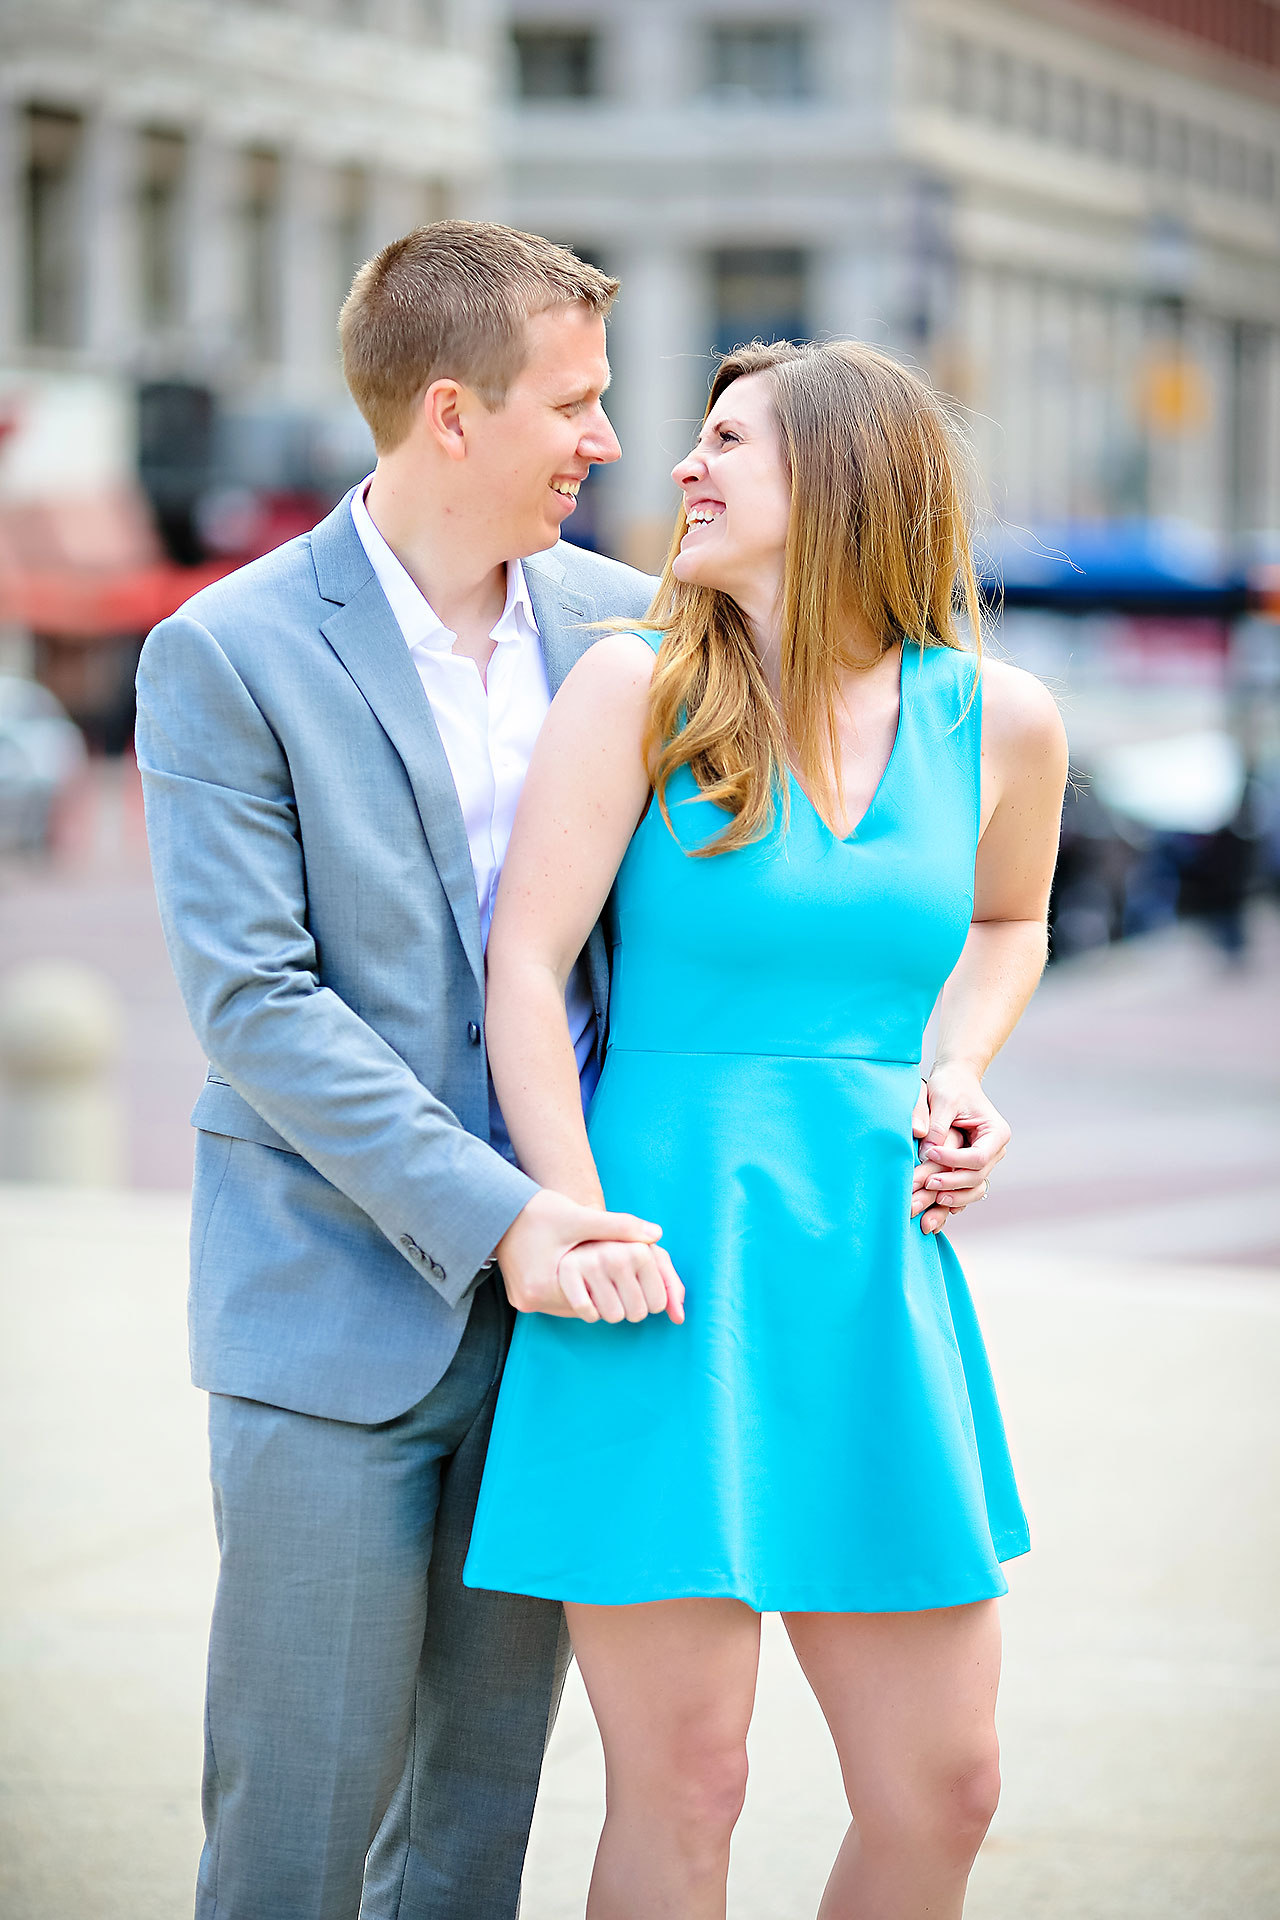 Chelsea Jeff Downtown Indy Engagement Session 055